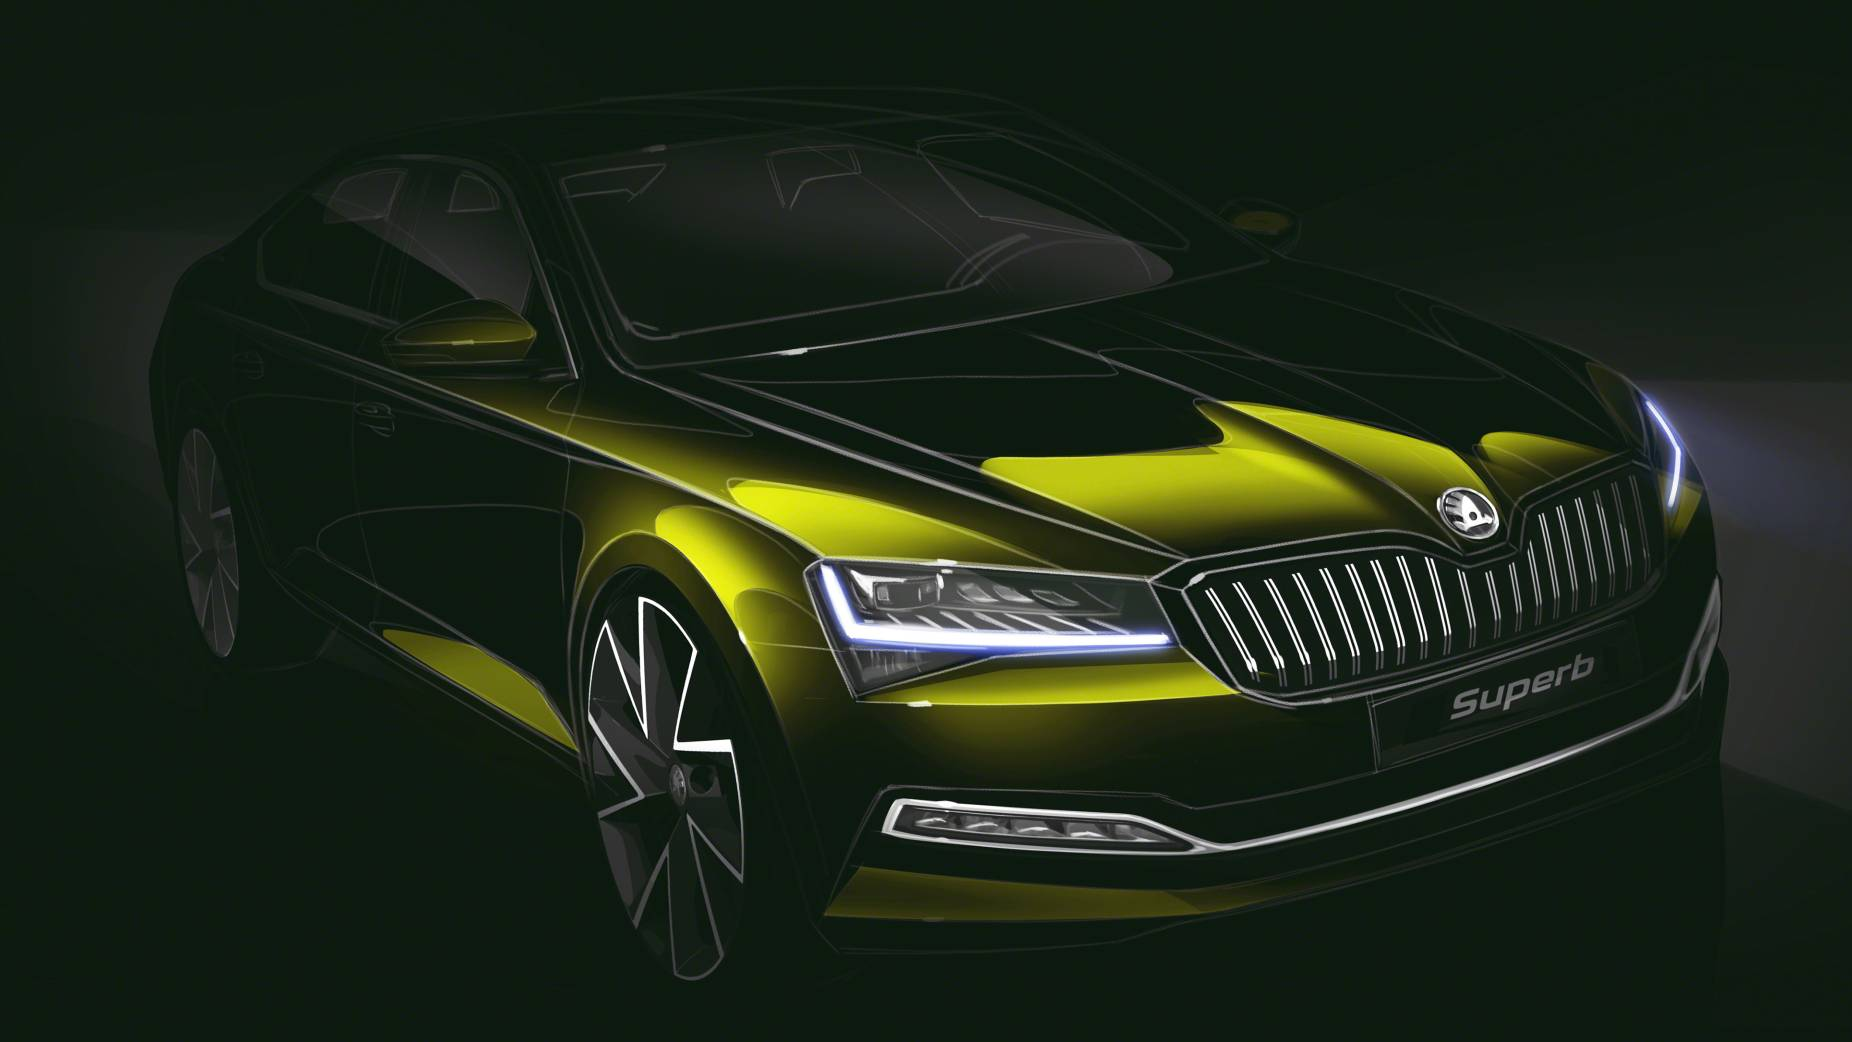 All-new Skoda Superb to debut in 2023, confirms CEO Thomas Schafer- Technology News, FP